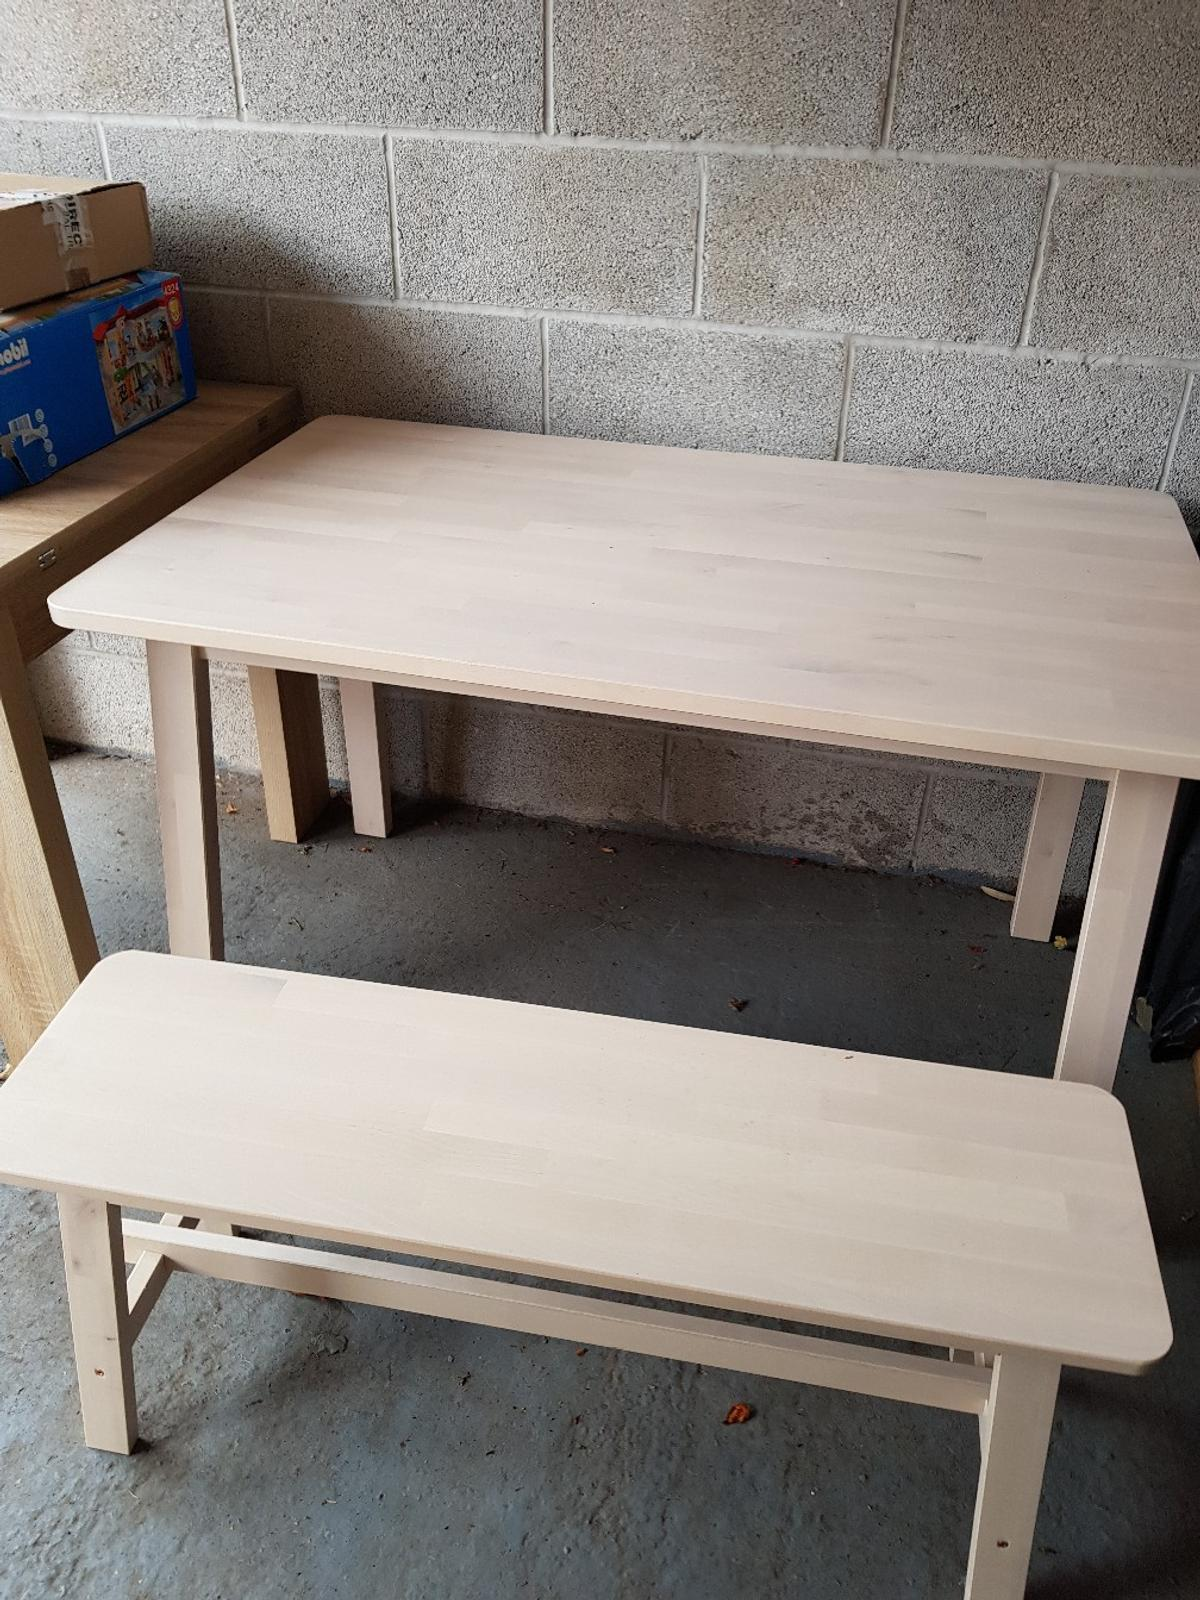 Ikea Norraker Table And Benches In